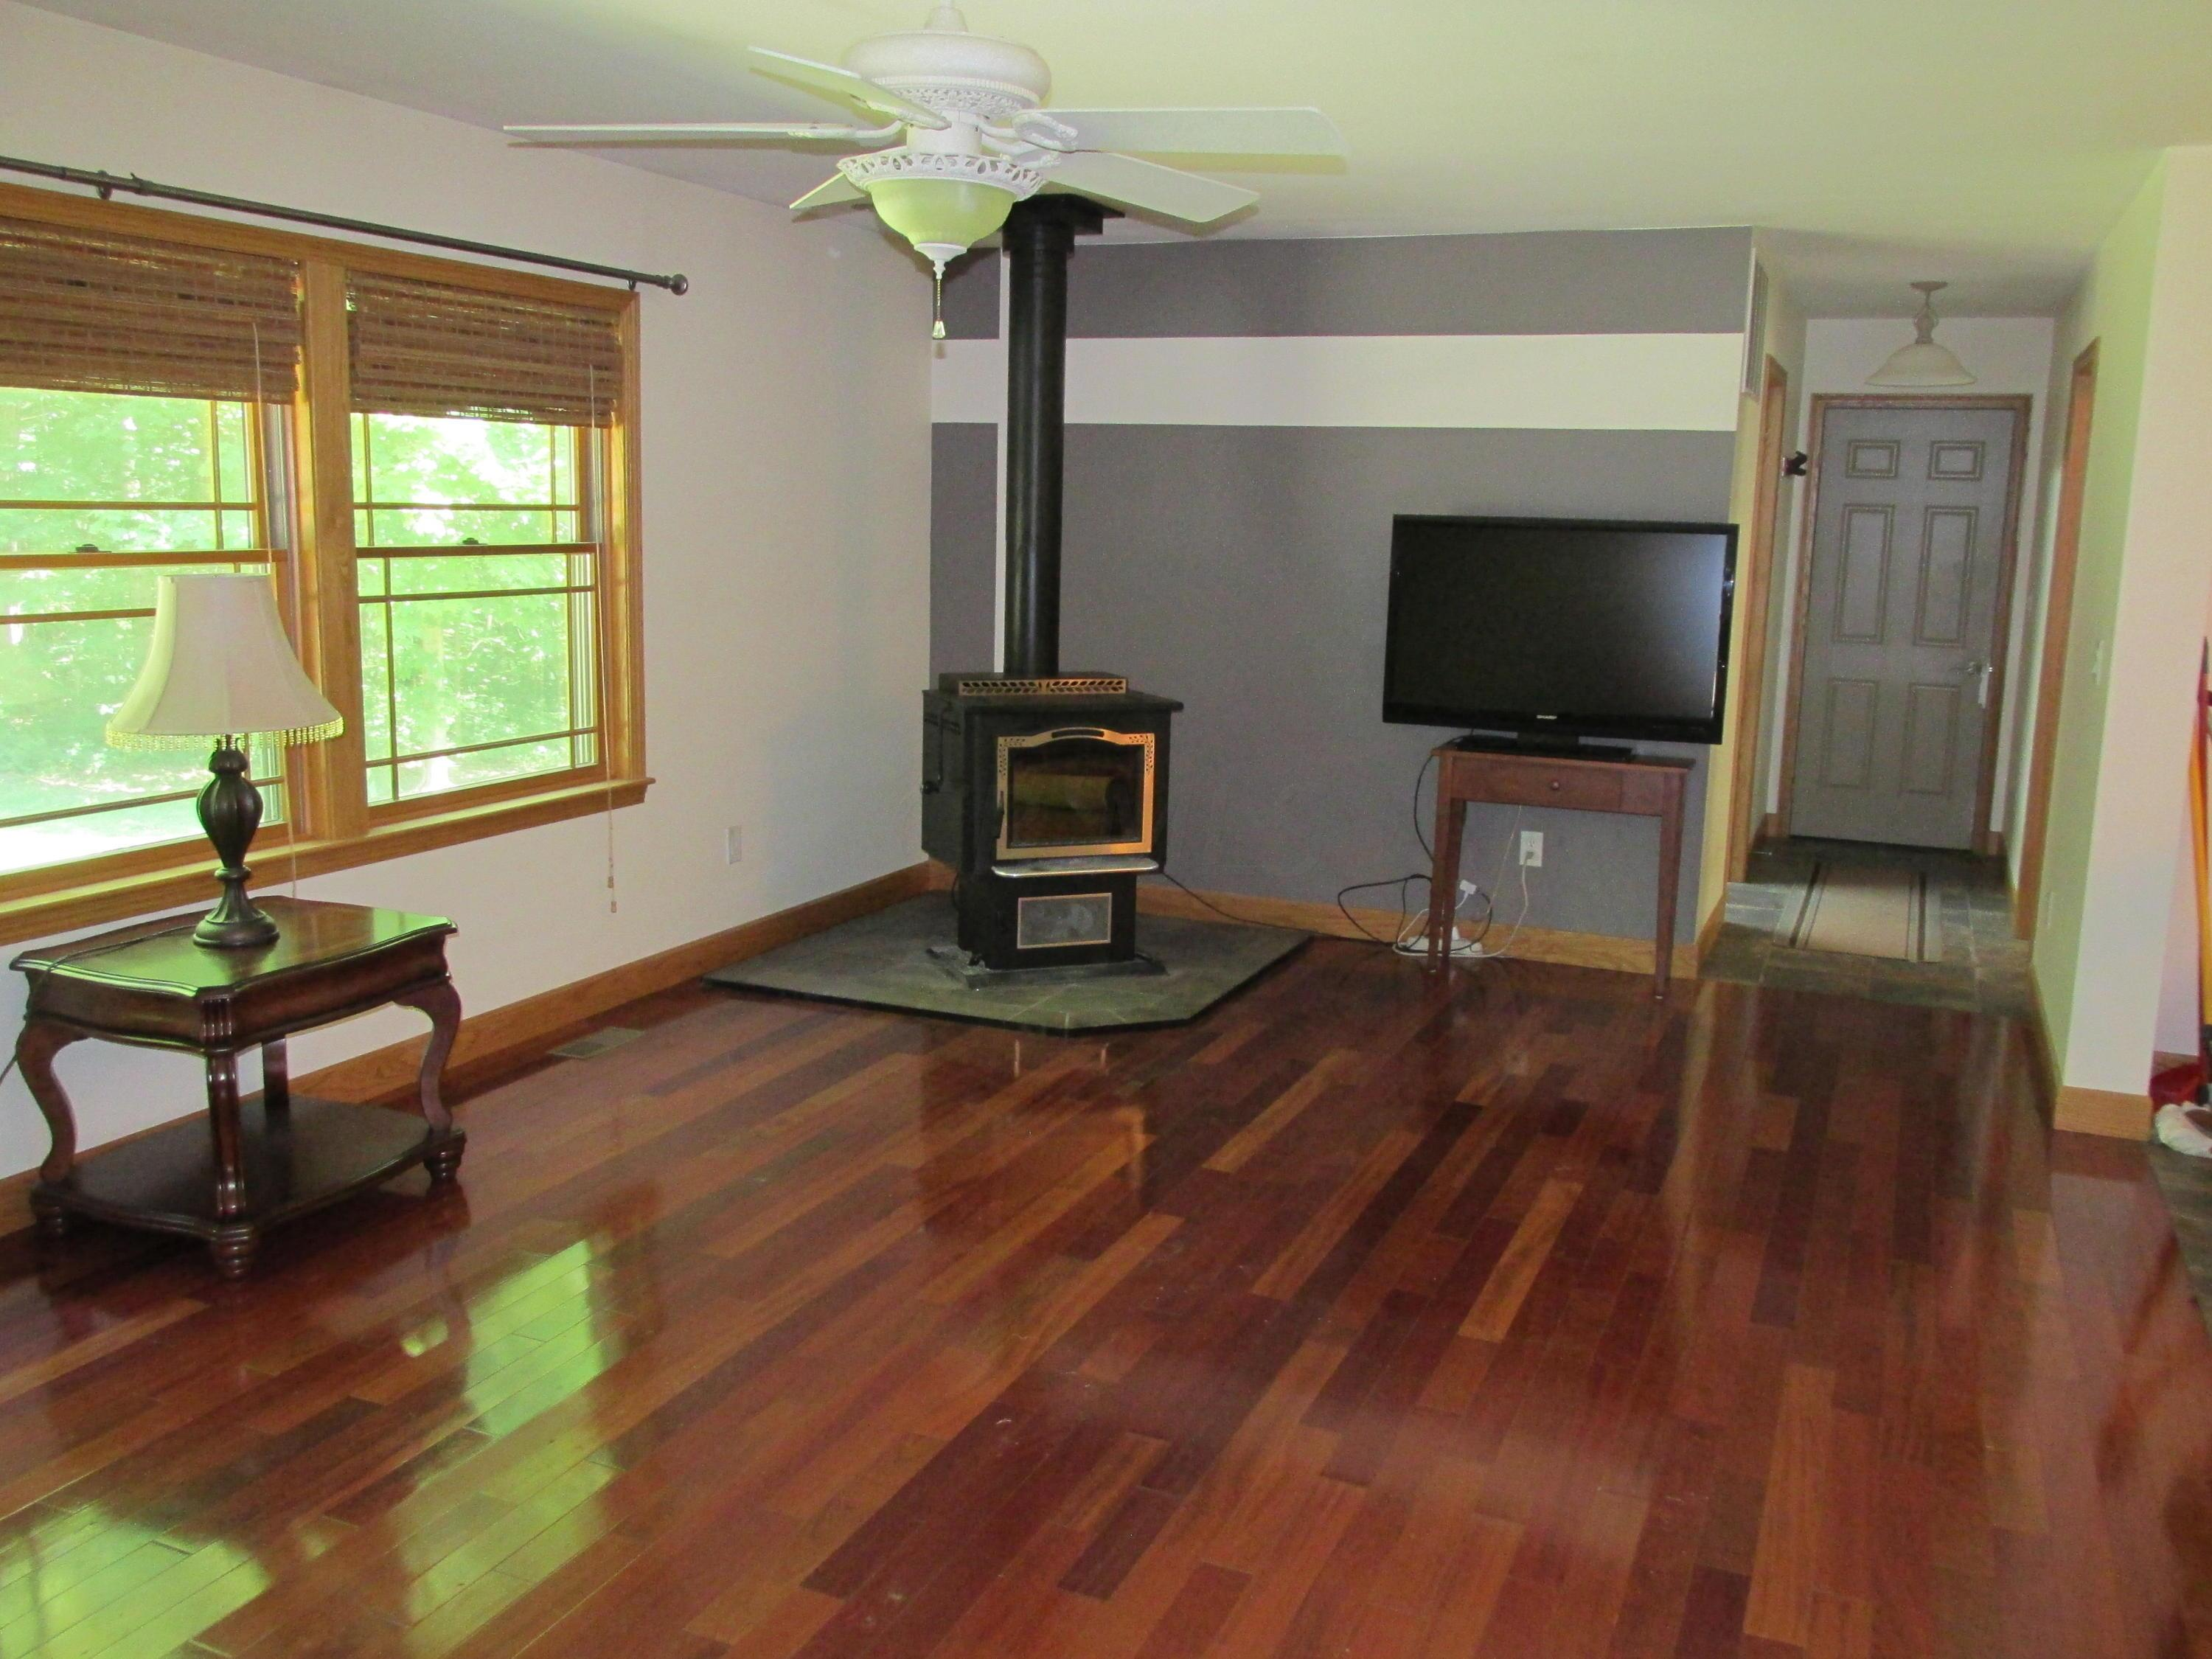 219 Township Road 51, Rushsylvania, Ohio 43347, 3 Bedrooms Bedrooms, ,3 BathroomsBathrooms,Residential,For Sale,Township Road 51,220018181